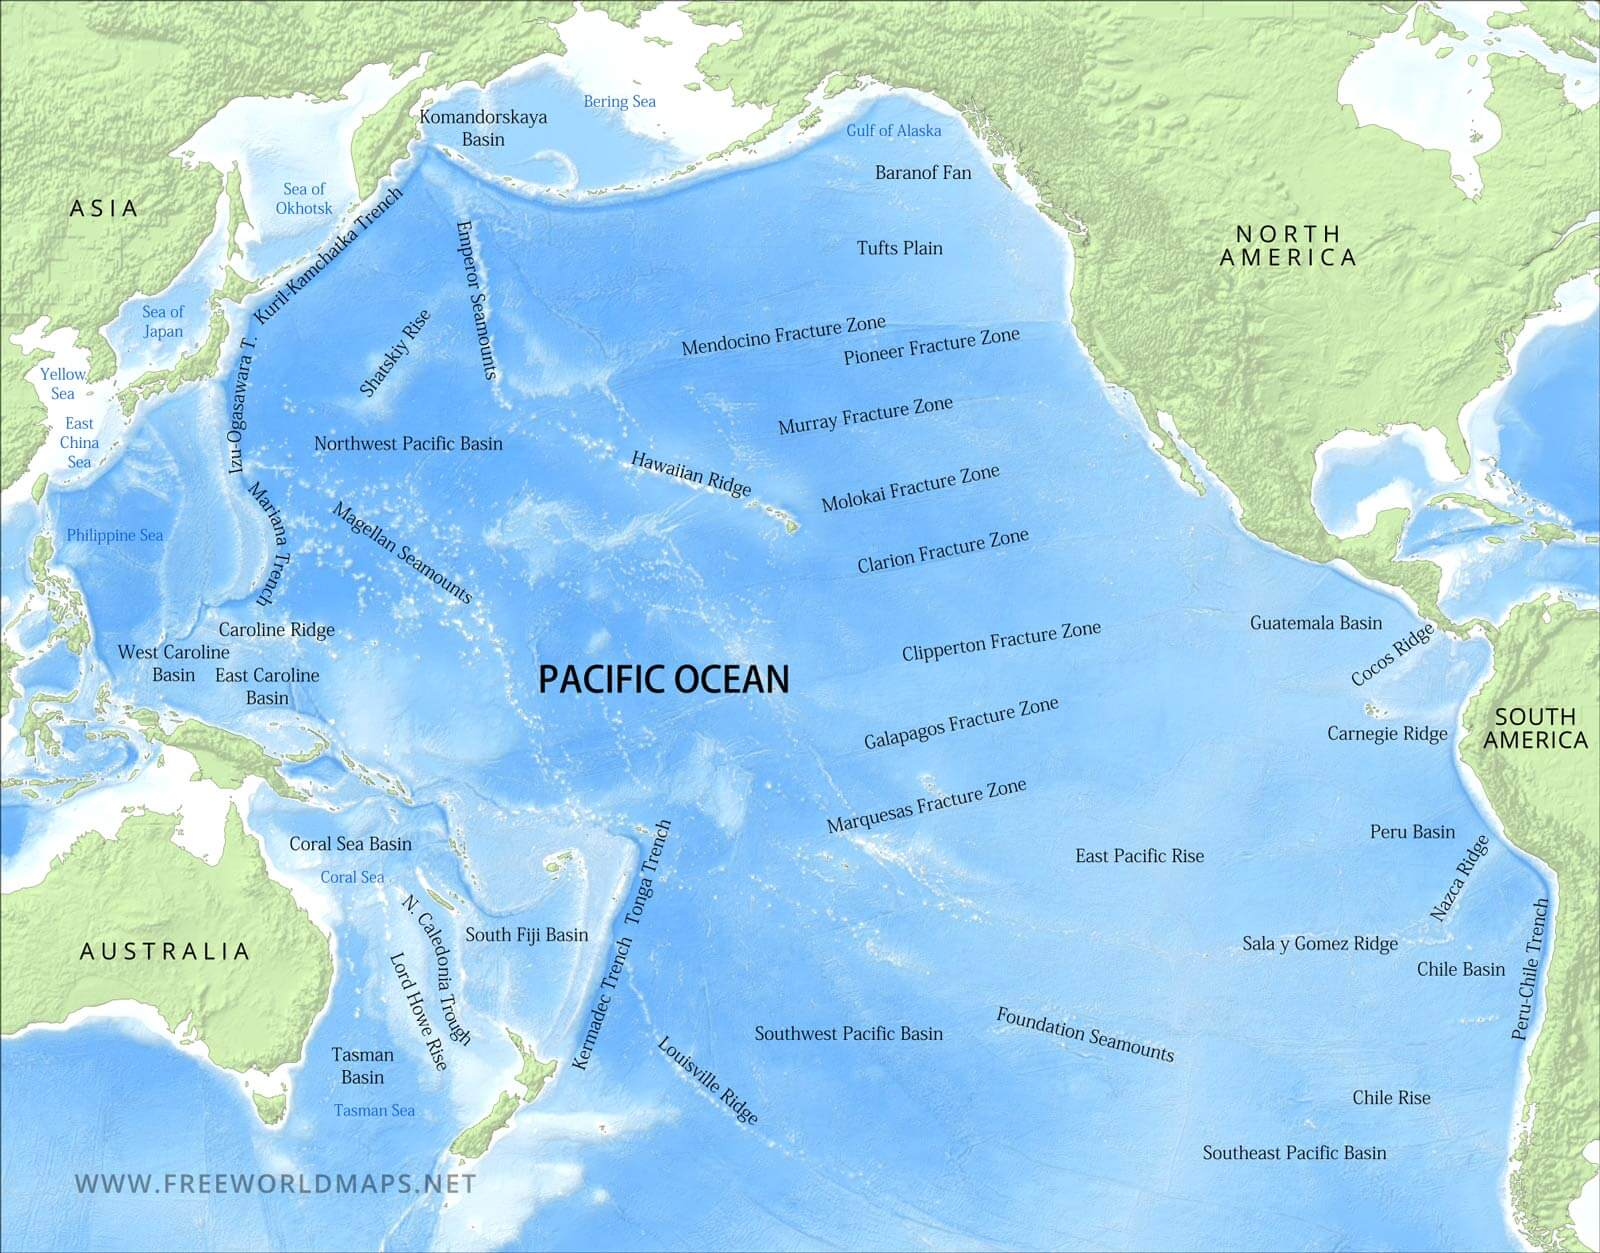 eastern pacific ocean map Maps Of The Pacific Ocean eastern pacific ocean map